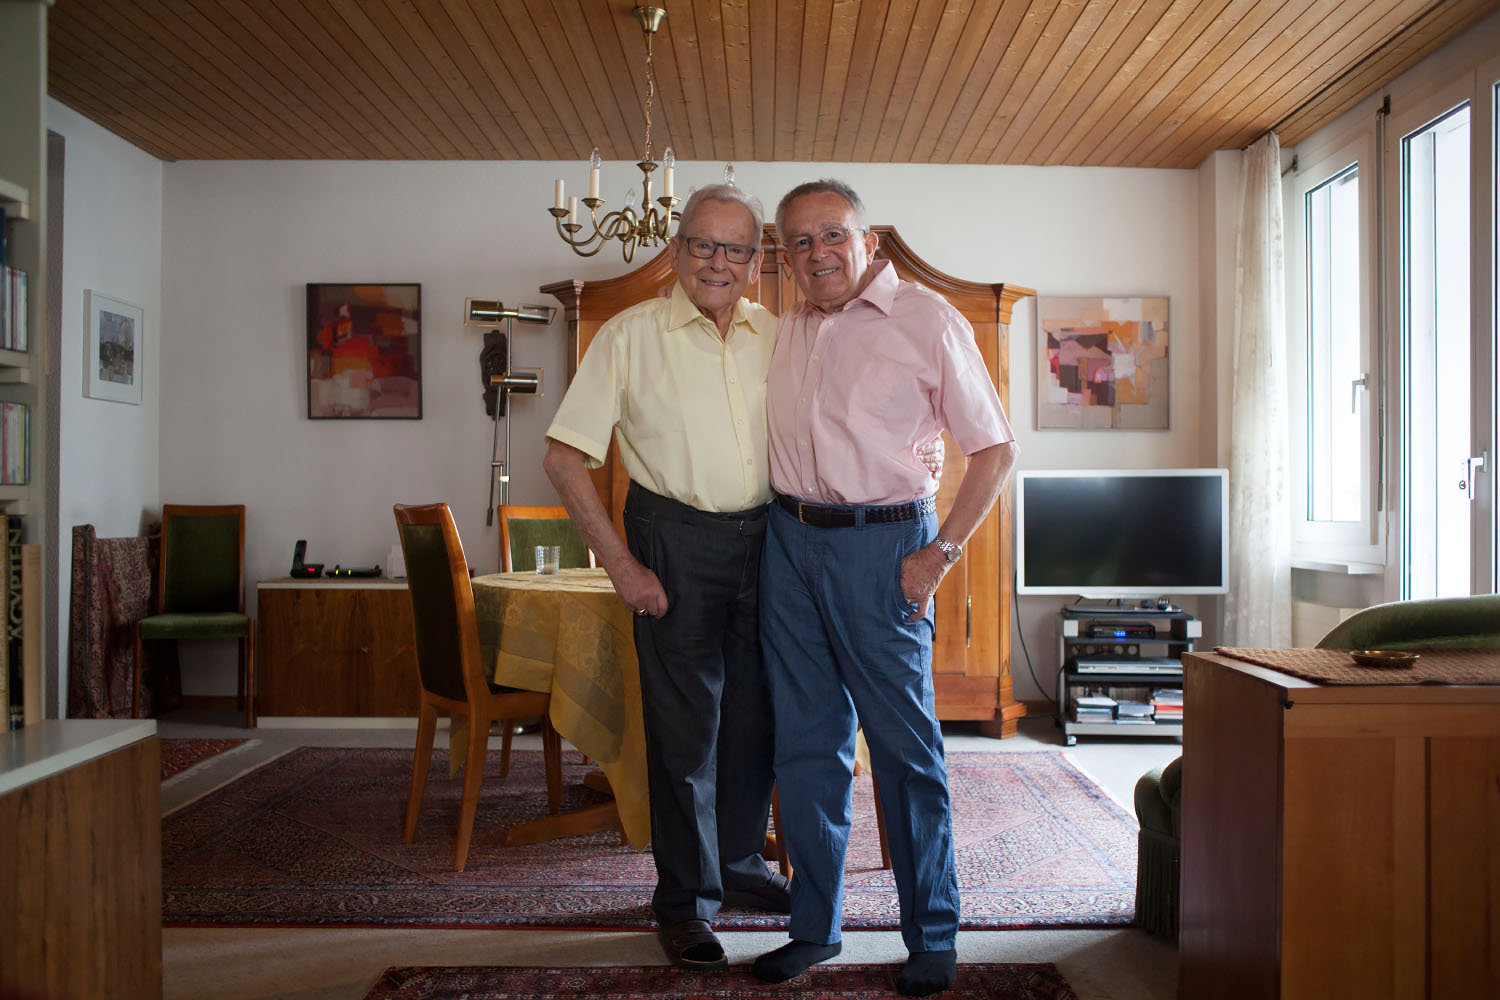 Robi (left) and Ernst (right), photo by Kevin Truong